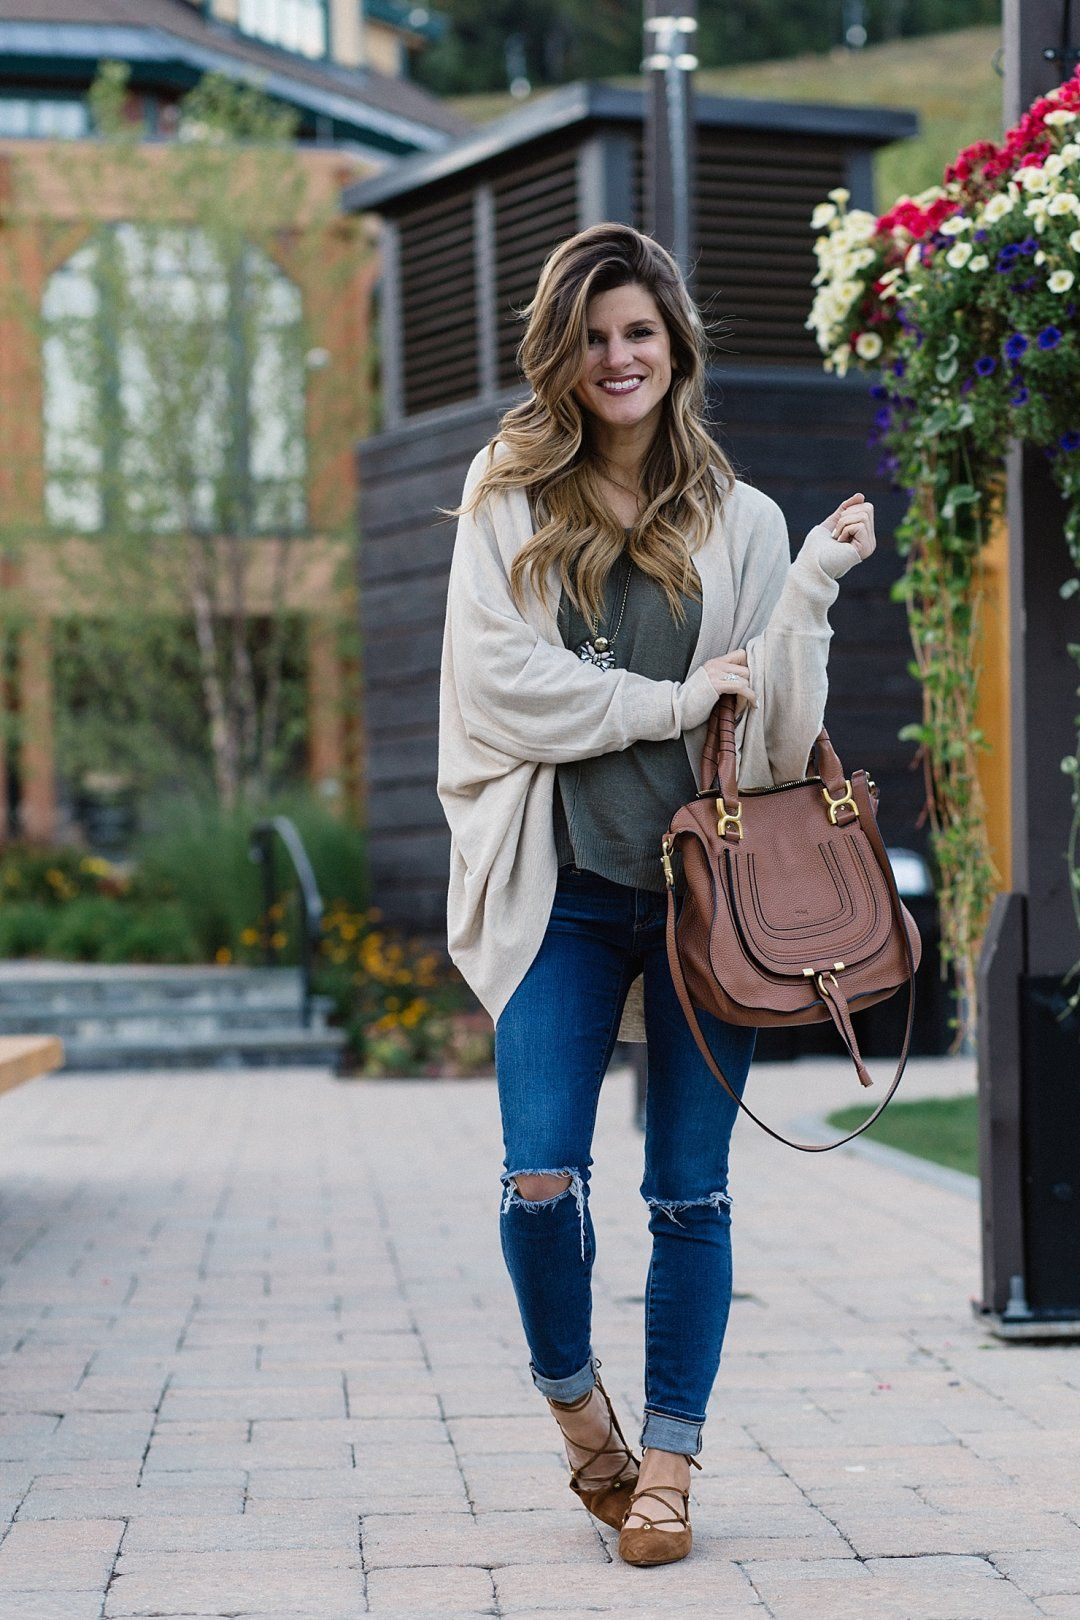 Rolled up skinny jeans outfit